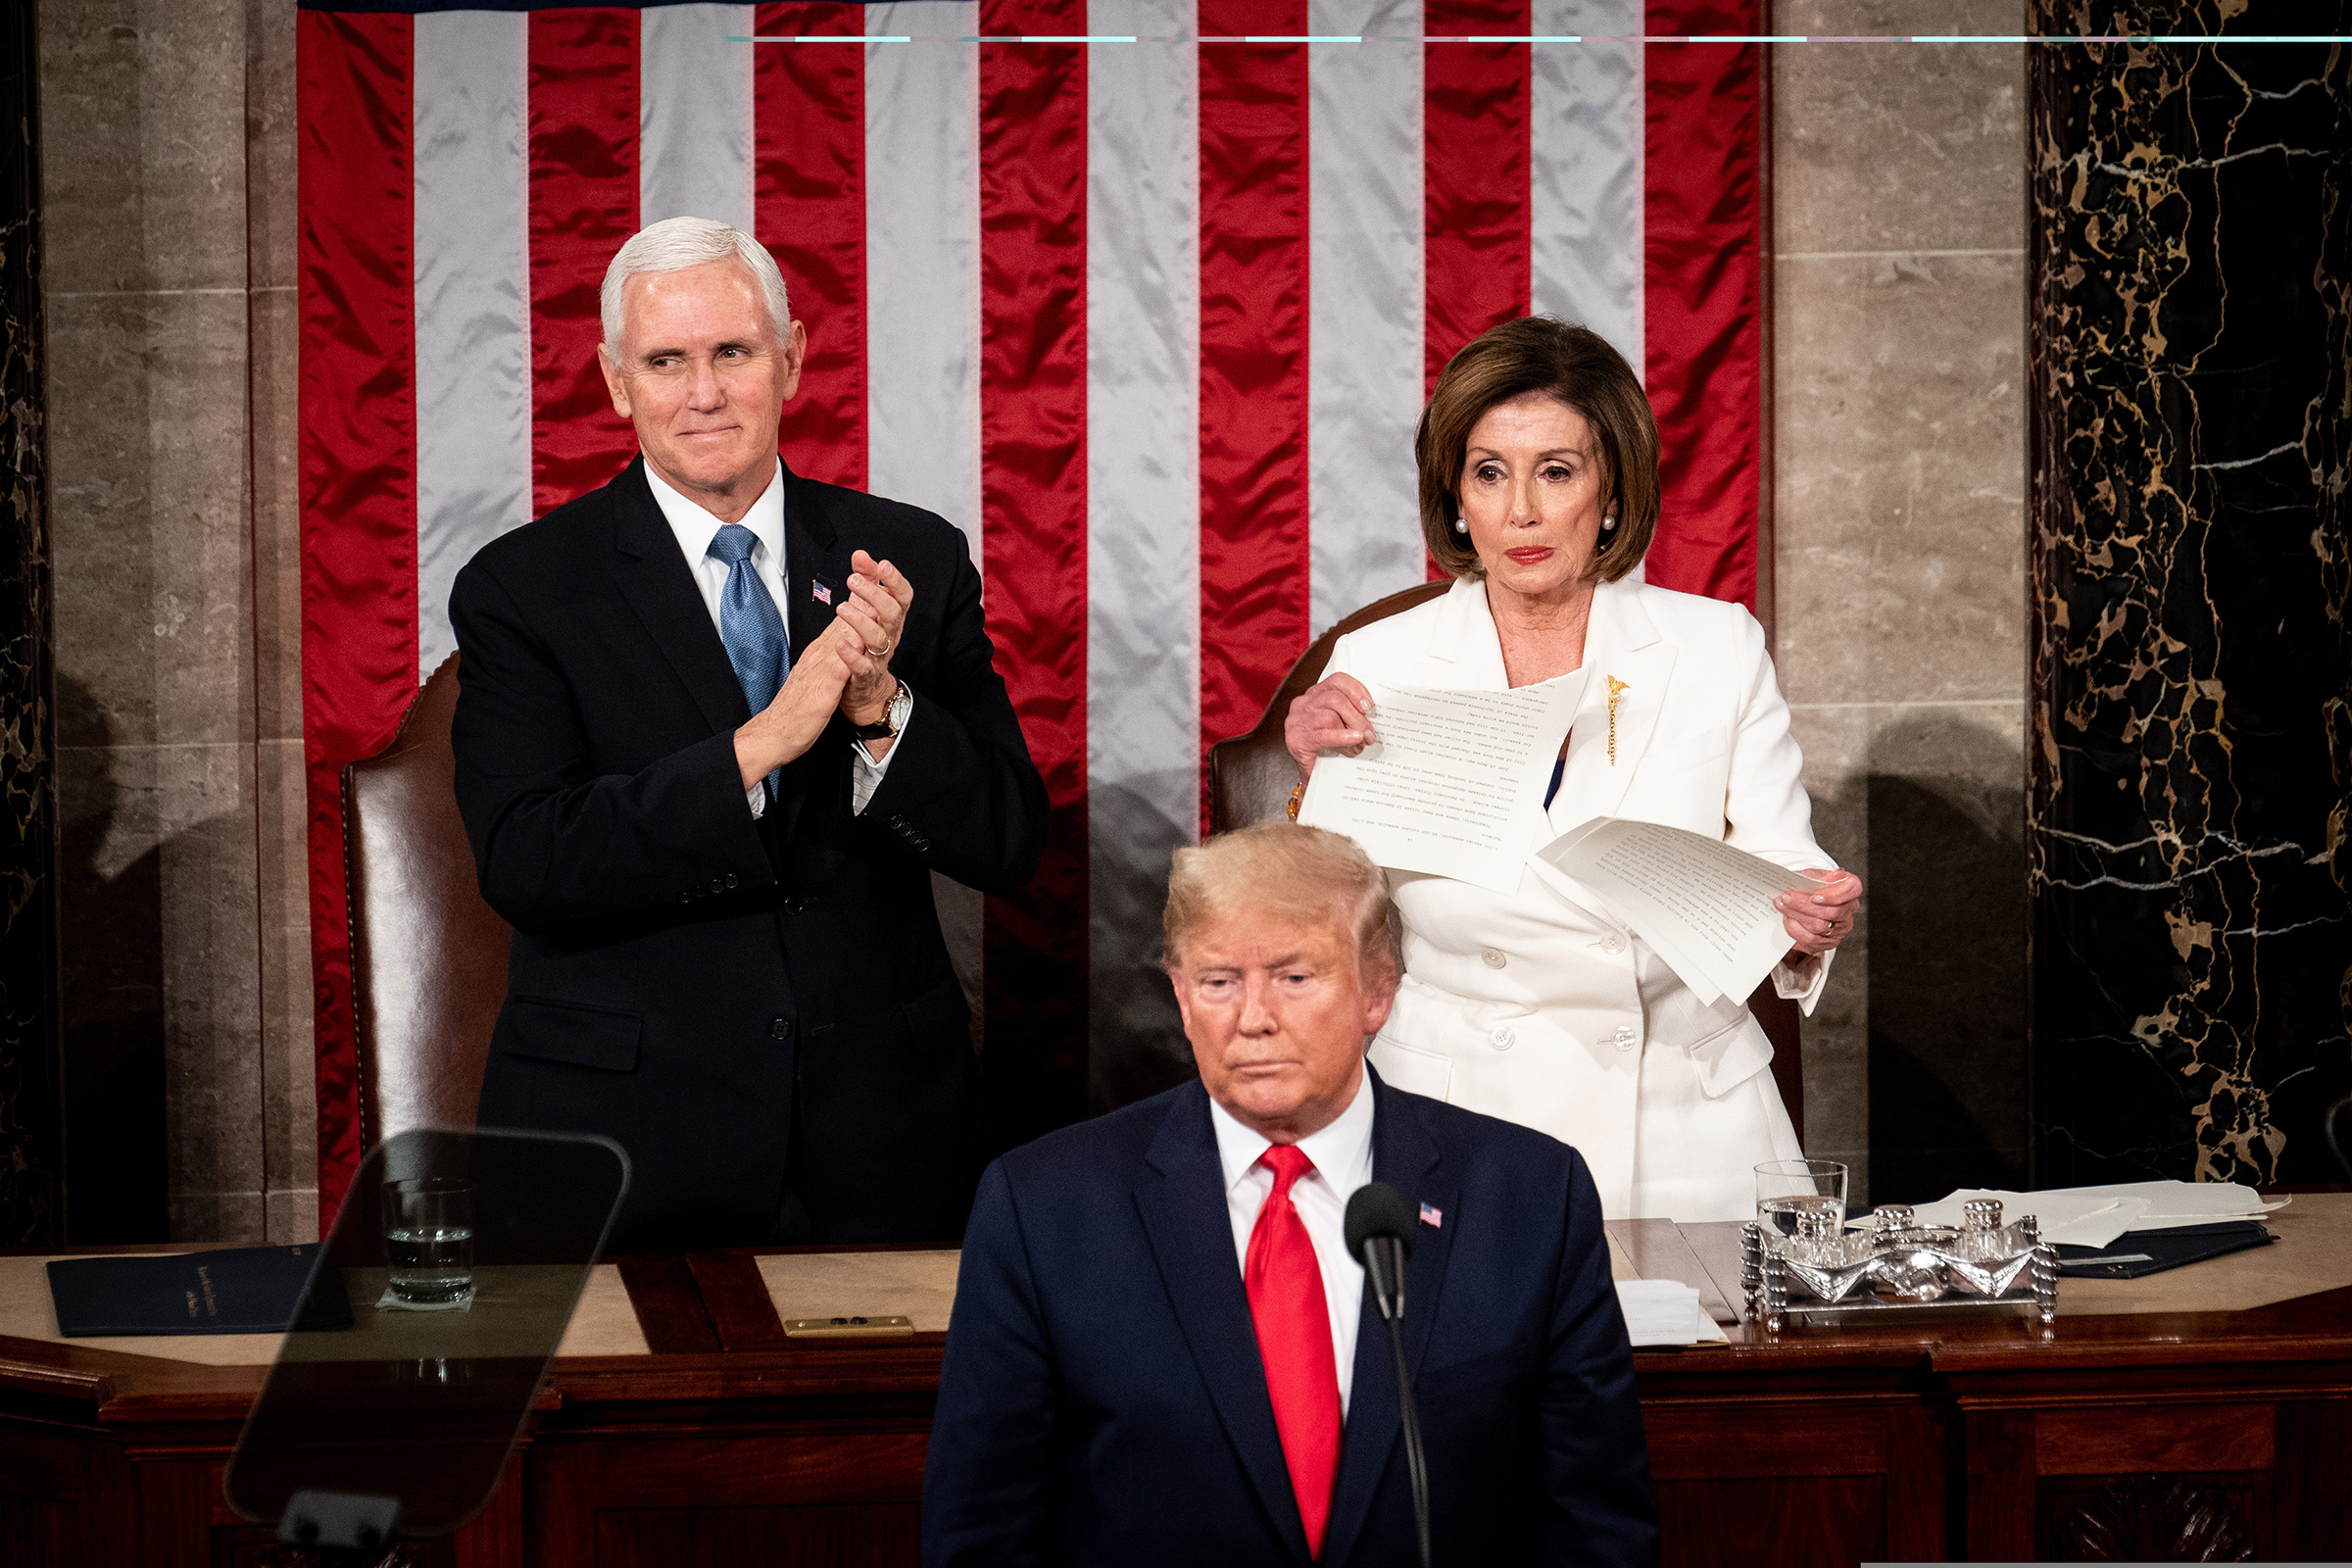 As Vice President Mike Pence applauds, House Speaker Nancy Pelosi rips up her copy of President Trump's State of the Union address following his speech at the Capitol in Washington, D.C., on Feb. 4.